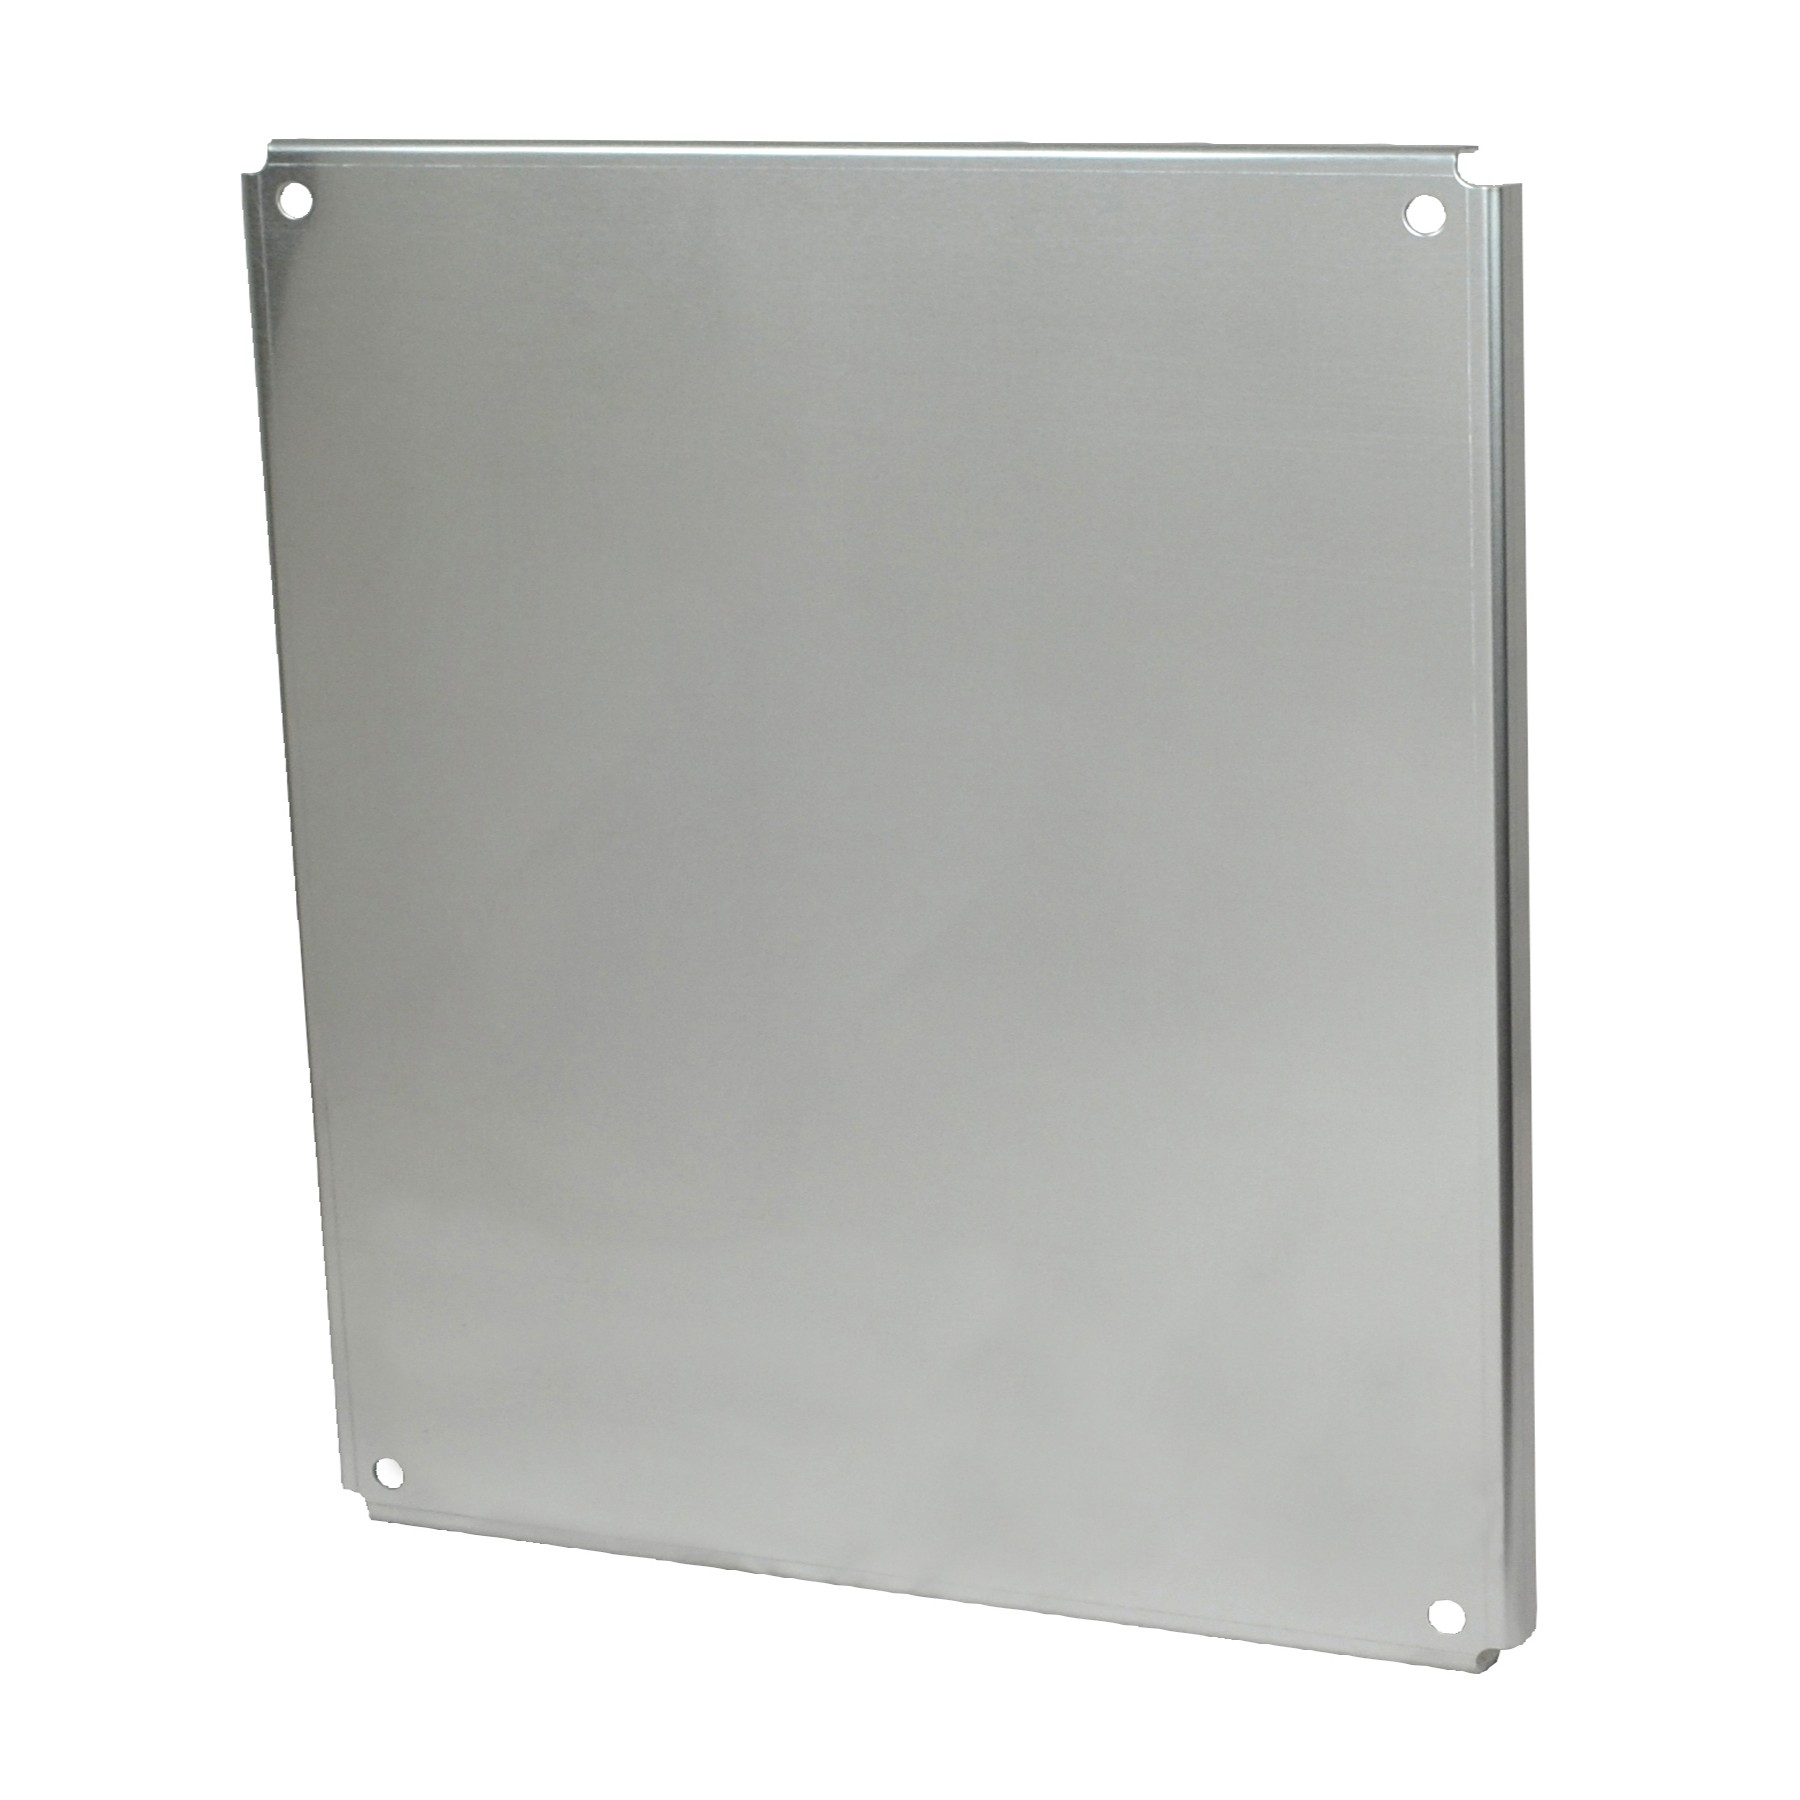 PA2424 - Aluminum Enclosure Back Panel Kit